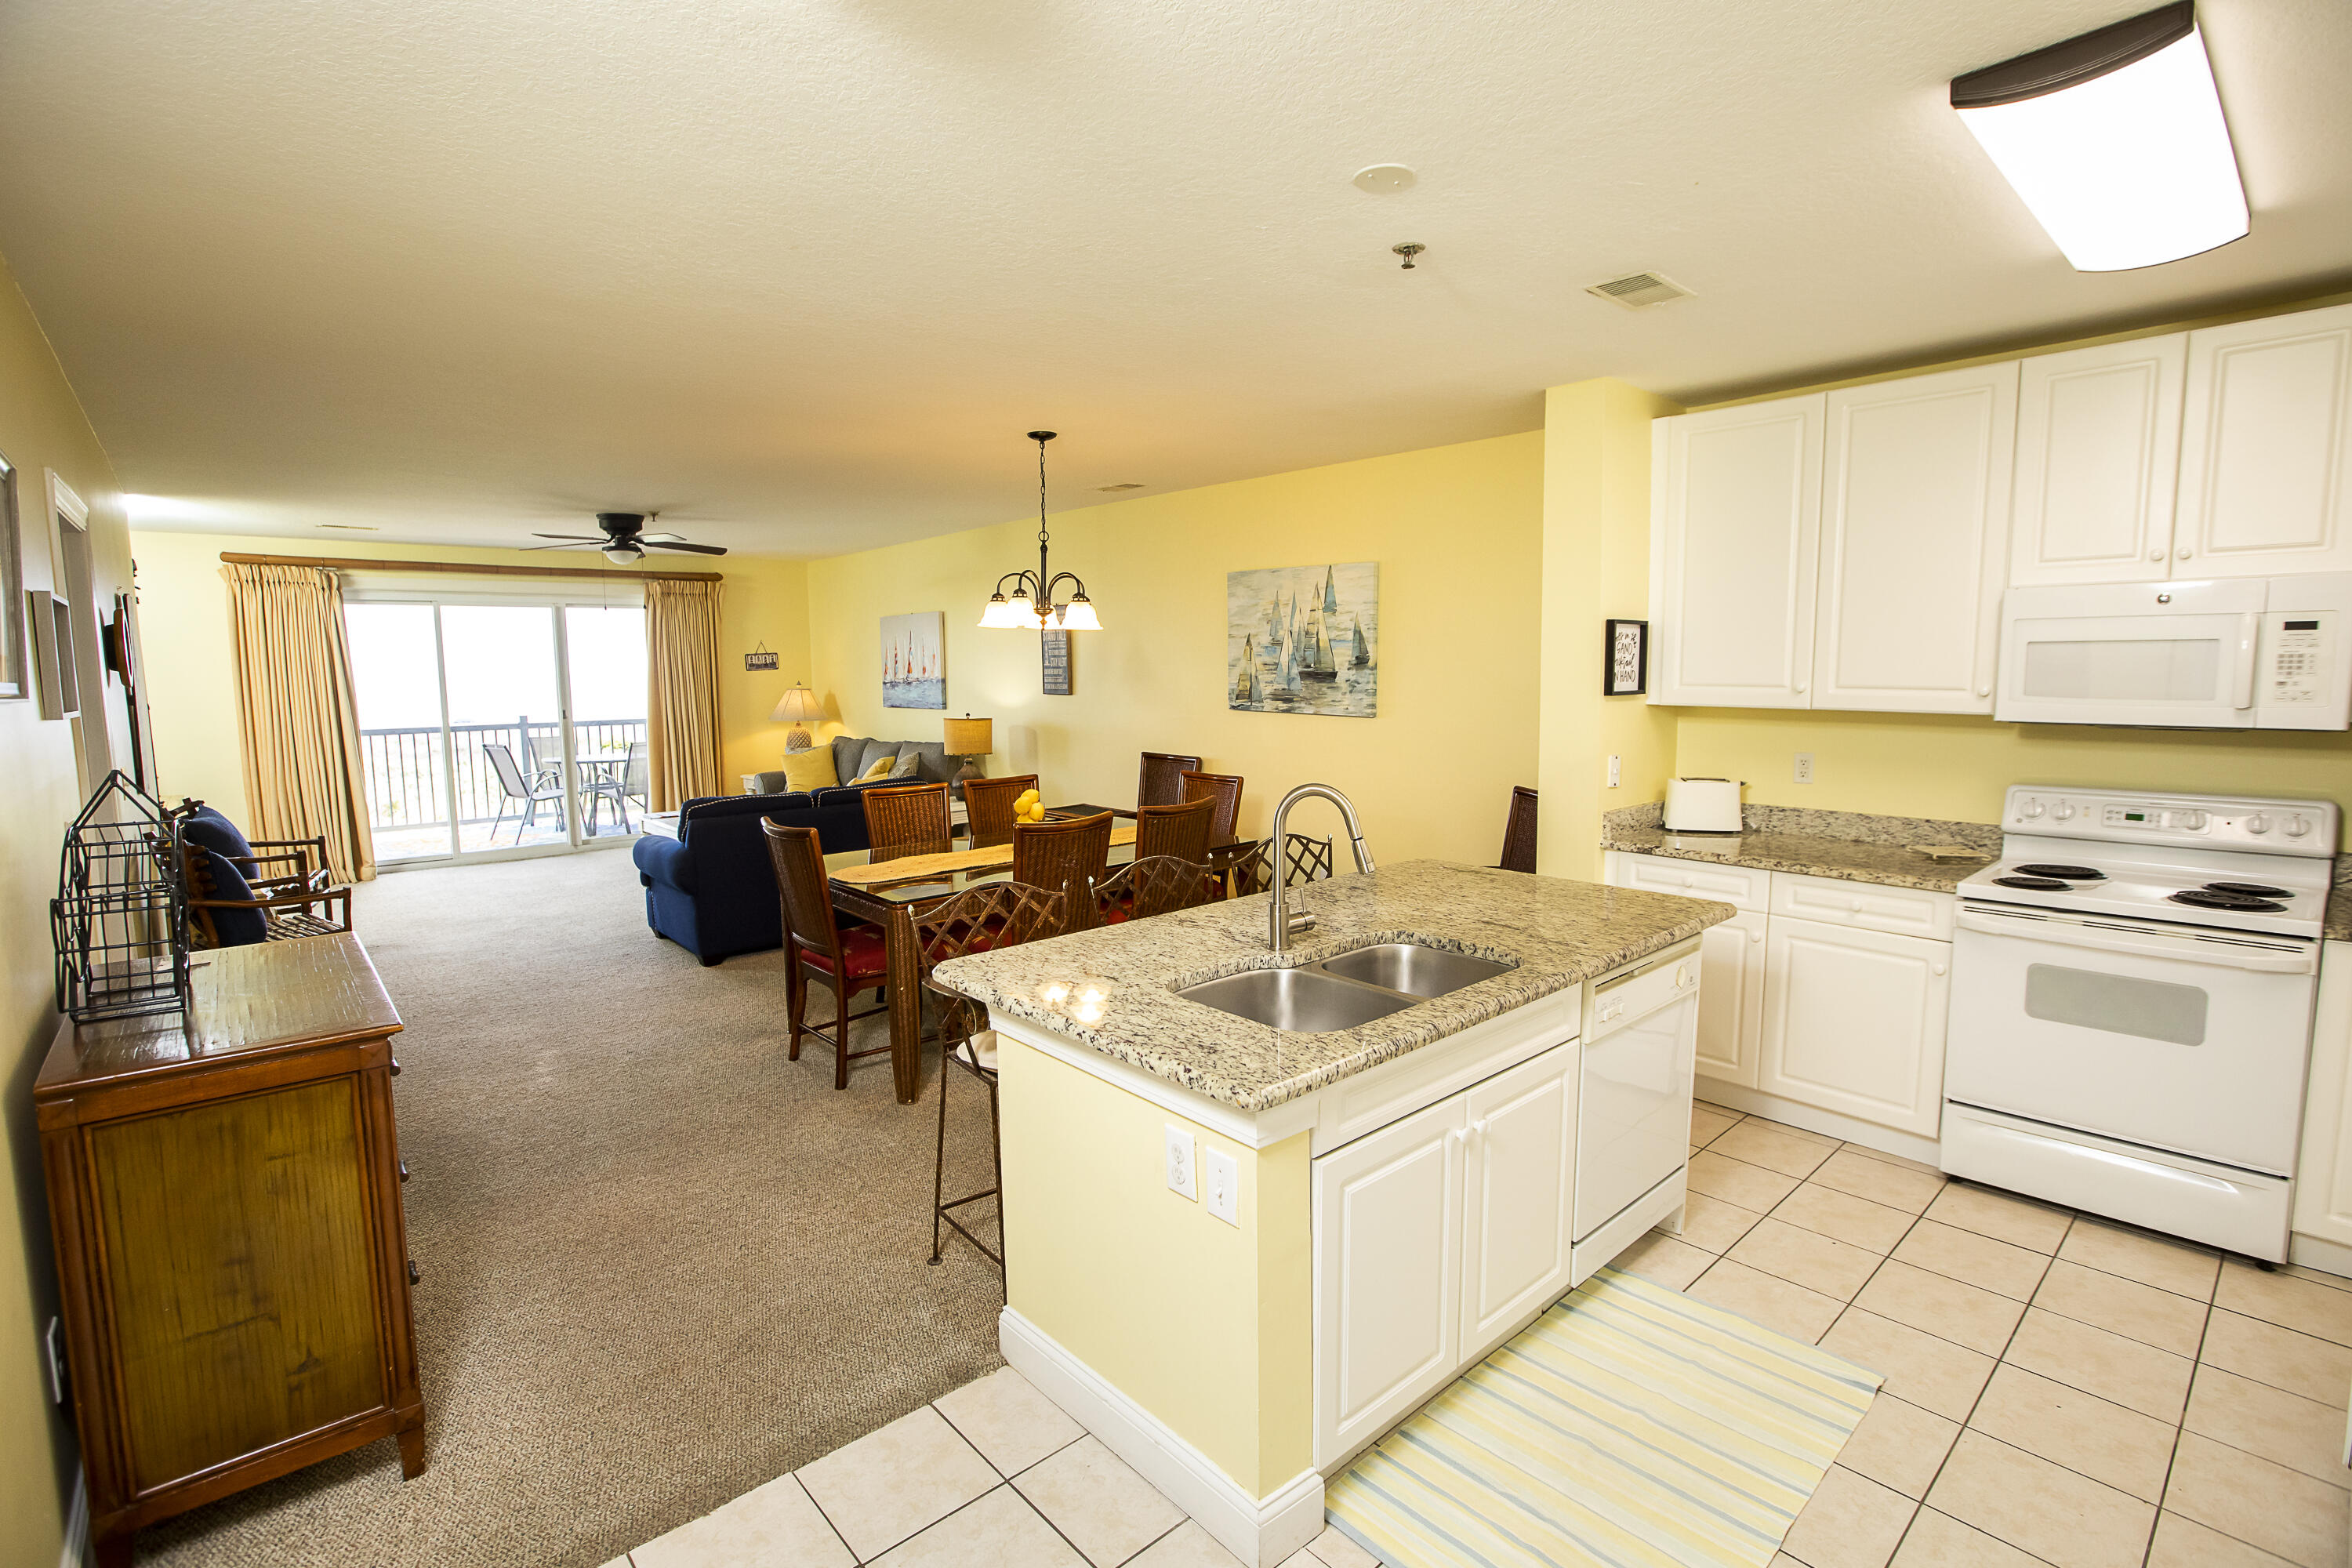 Isle of Palms Homes For Sale - 1140 Ocean, Isle of Palms, SC - 20